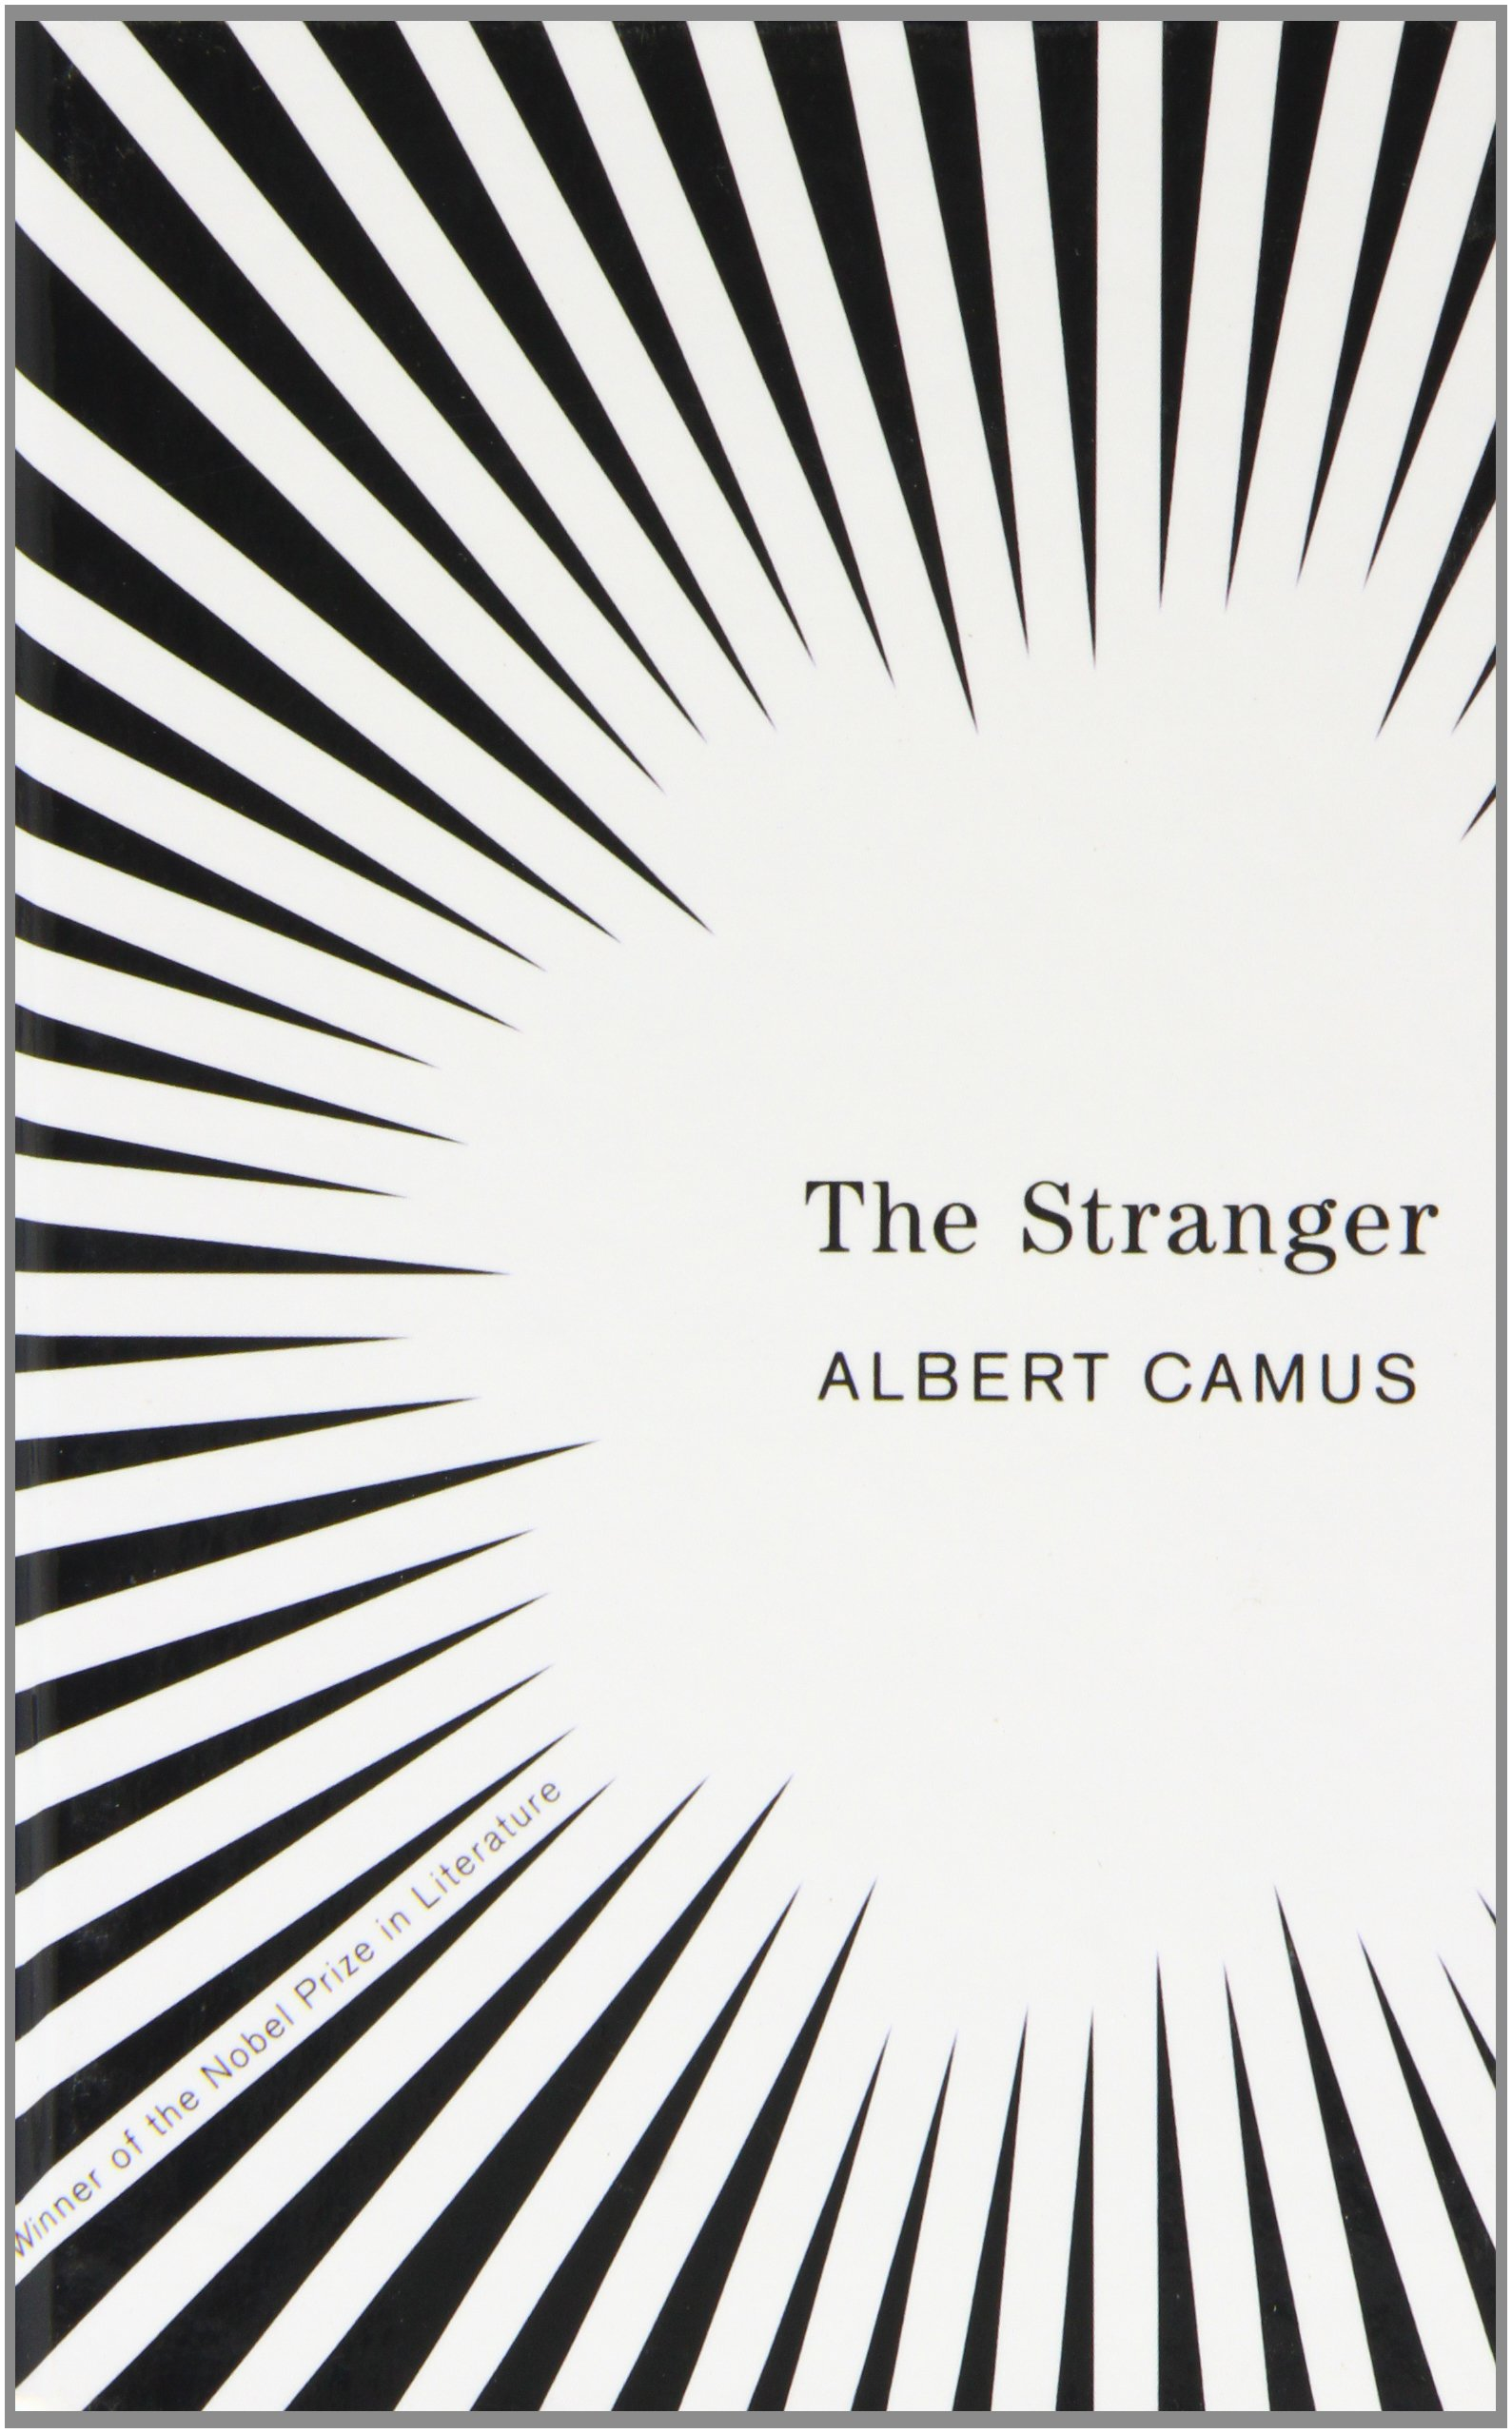 the stranger albert camus matthew ward  the stranger albert camus matthew ward 9781439570999 literature amazon